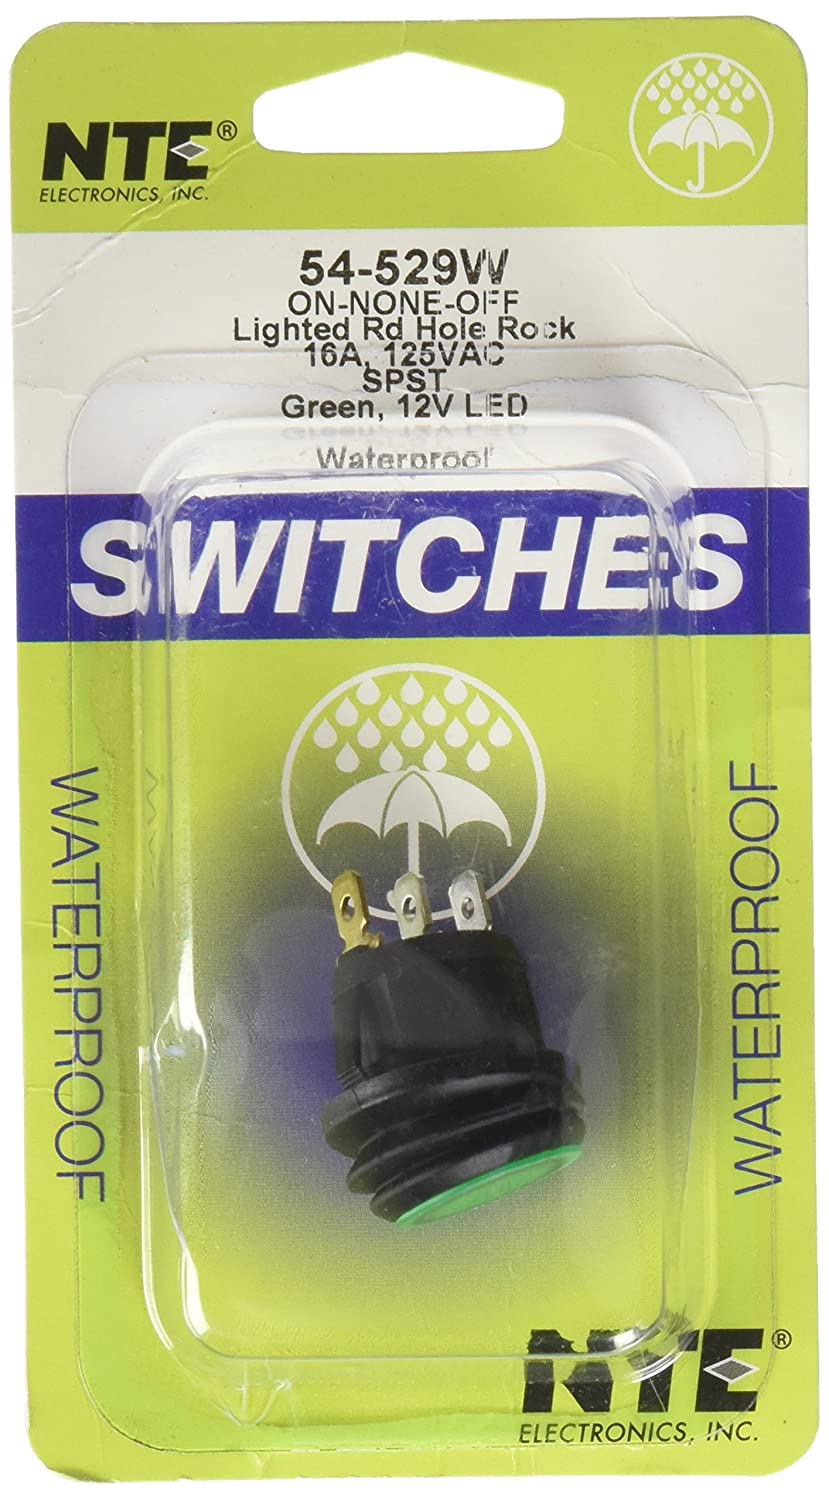 Nte Electronics 54 529w Waterproof Round Illuminated Rocker Switch New Wire Marine Products Toggle Switches Access Spst Circuit On None Off Action Nylon Green Led Actuator 0187 Quick Connect